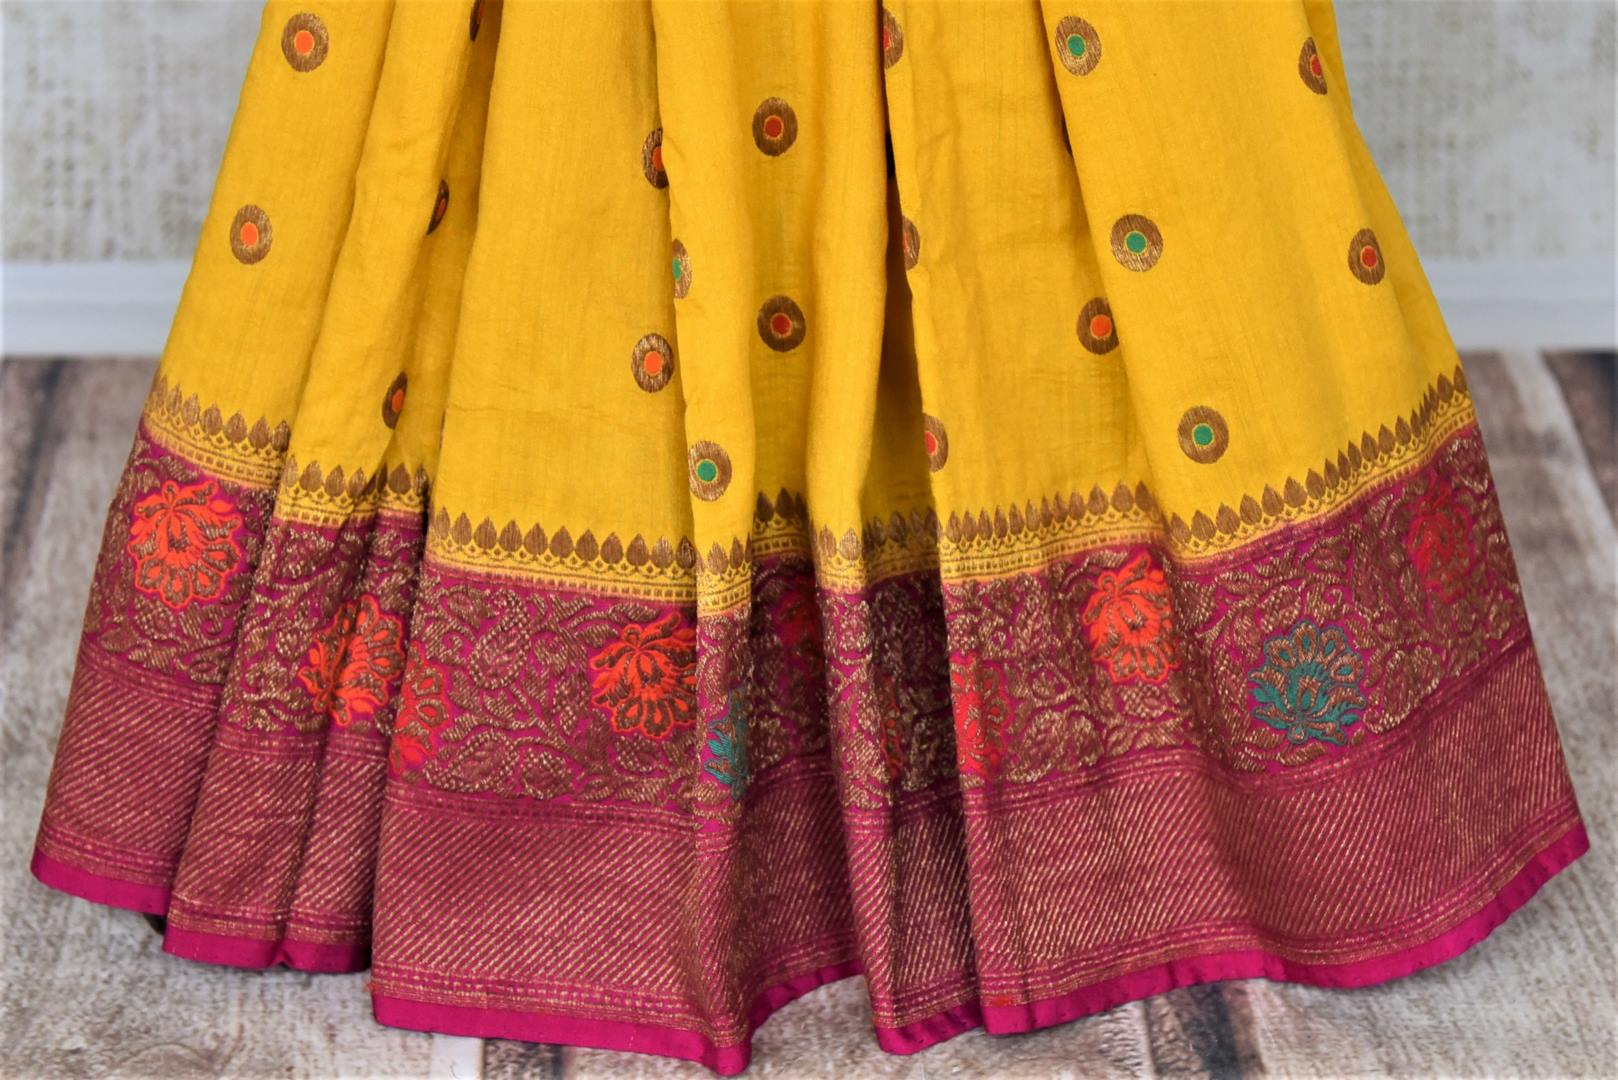 Buy yellow muga Benarasi saree online in USA with pink antique zari floral border. Keep your ethnic style updated with latest designer sarees, handloom sarees, muga silk sarees from Pure Elegance Indian fashion store in USA.-pleats